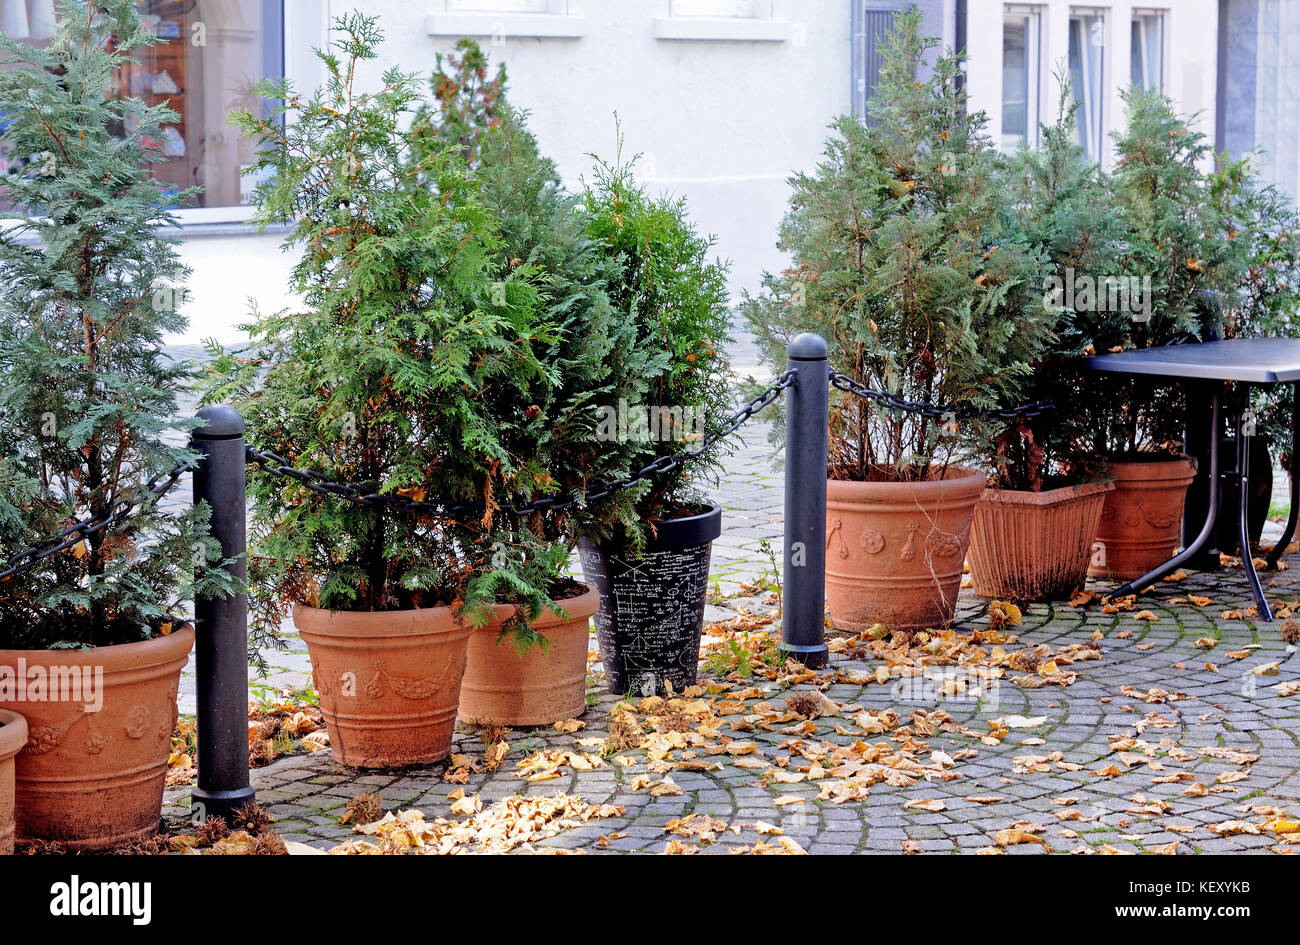 conifers in plant pots - Stock Image